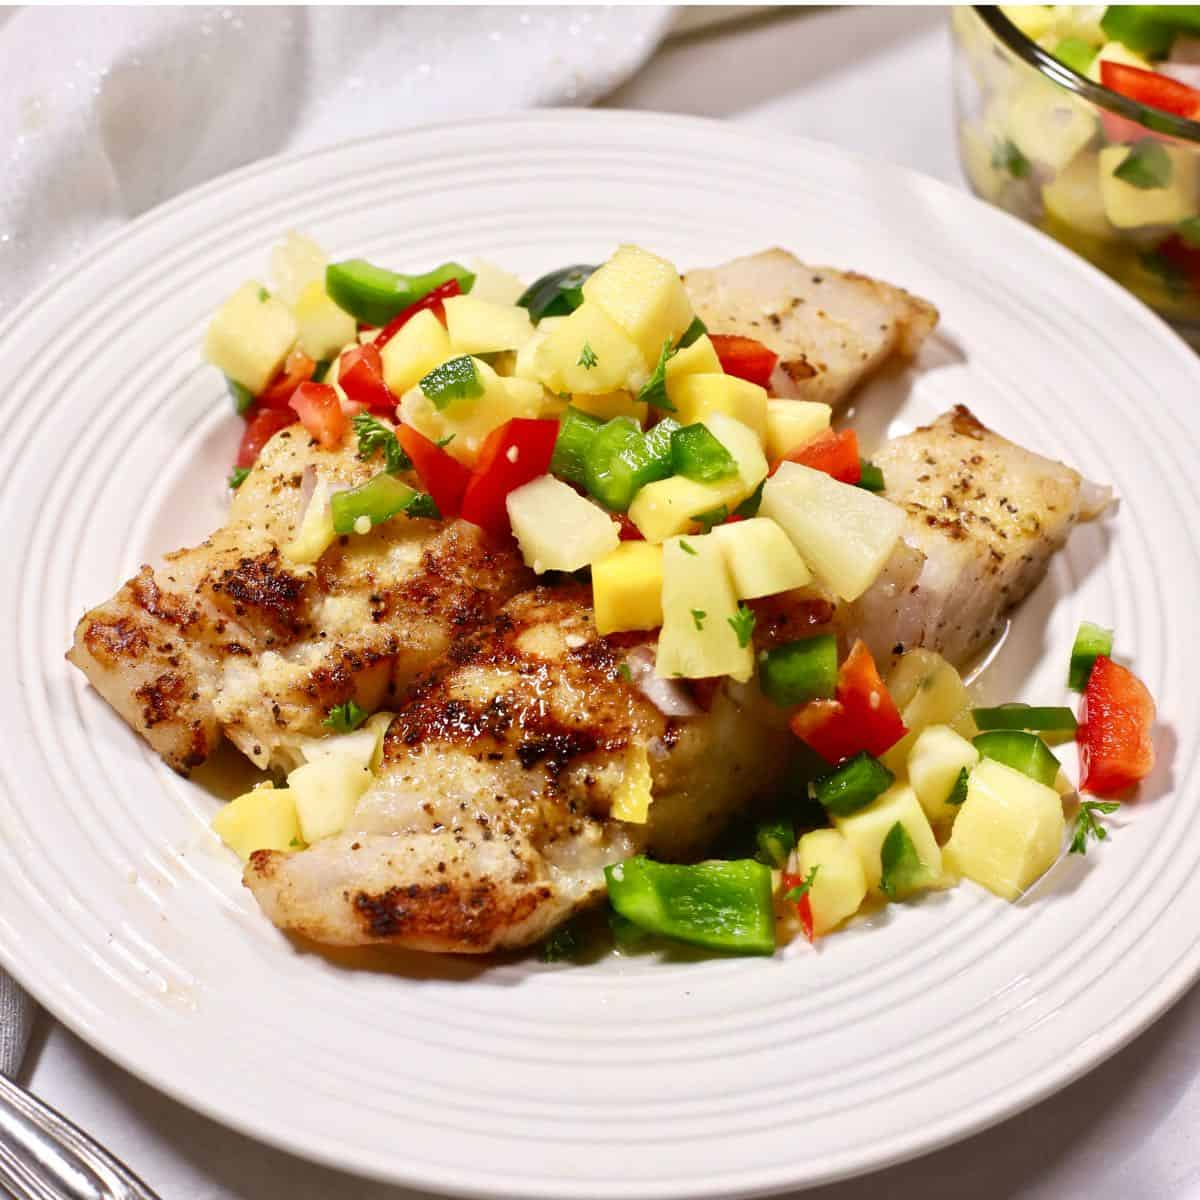 Grilled grouper on a plate topped with mango salsa.